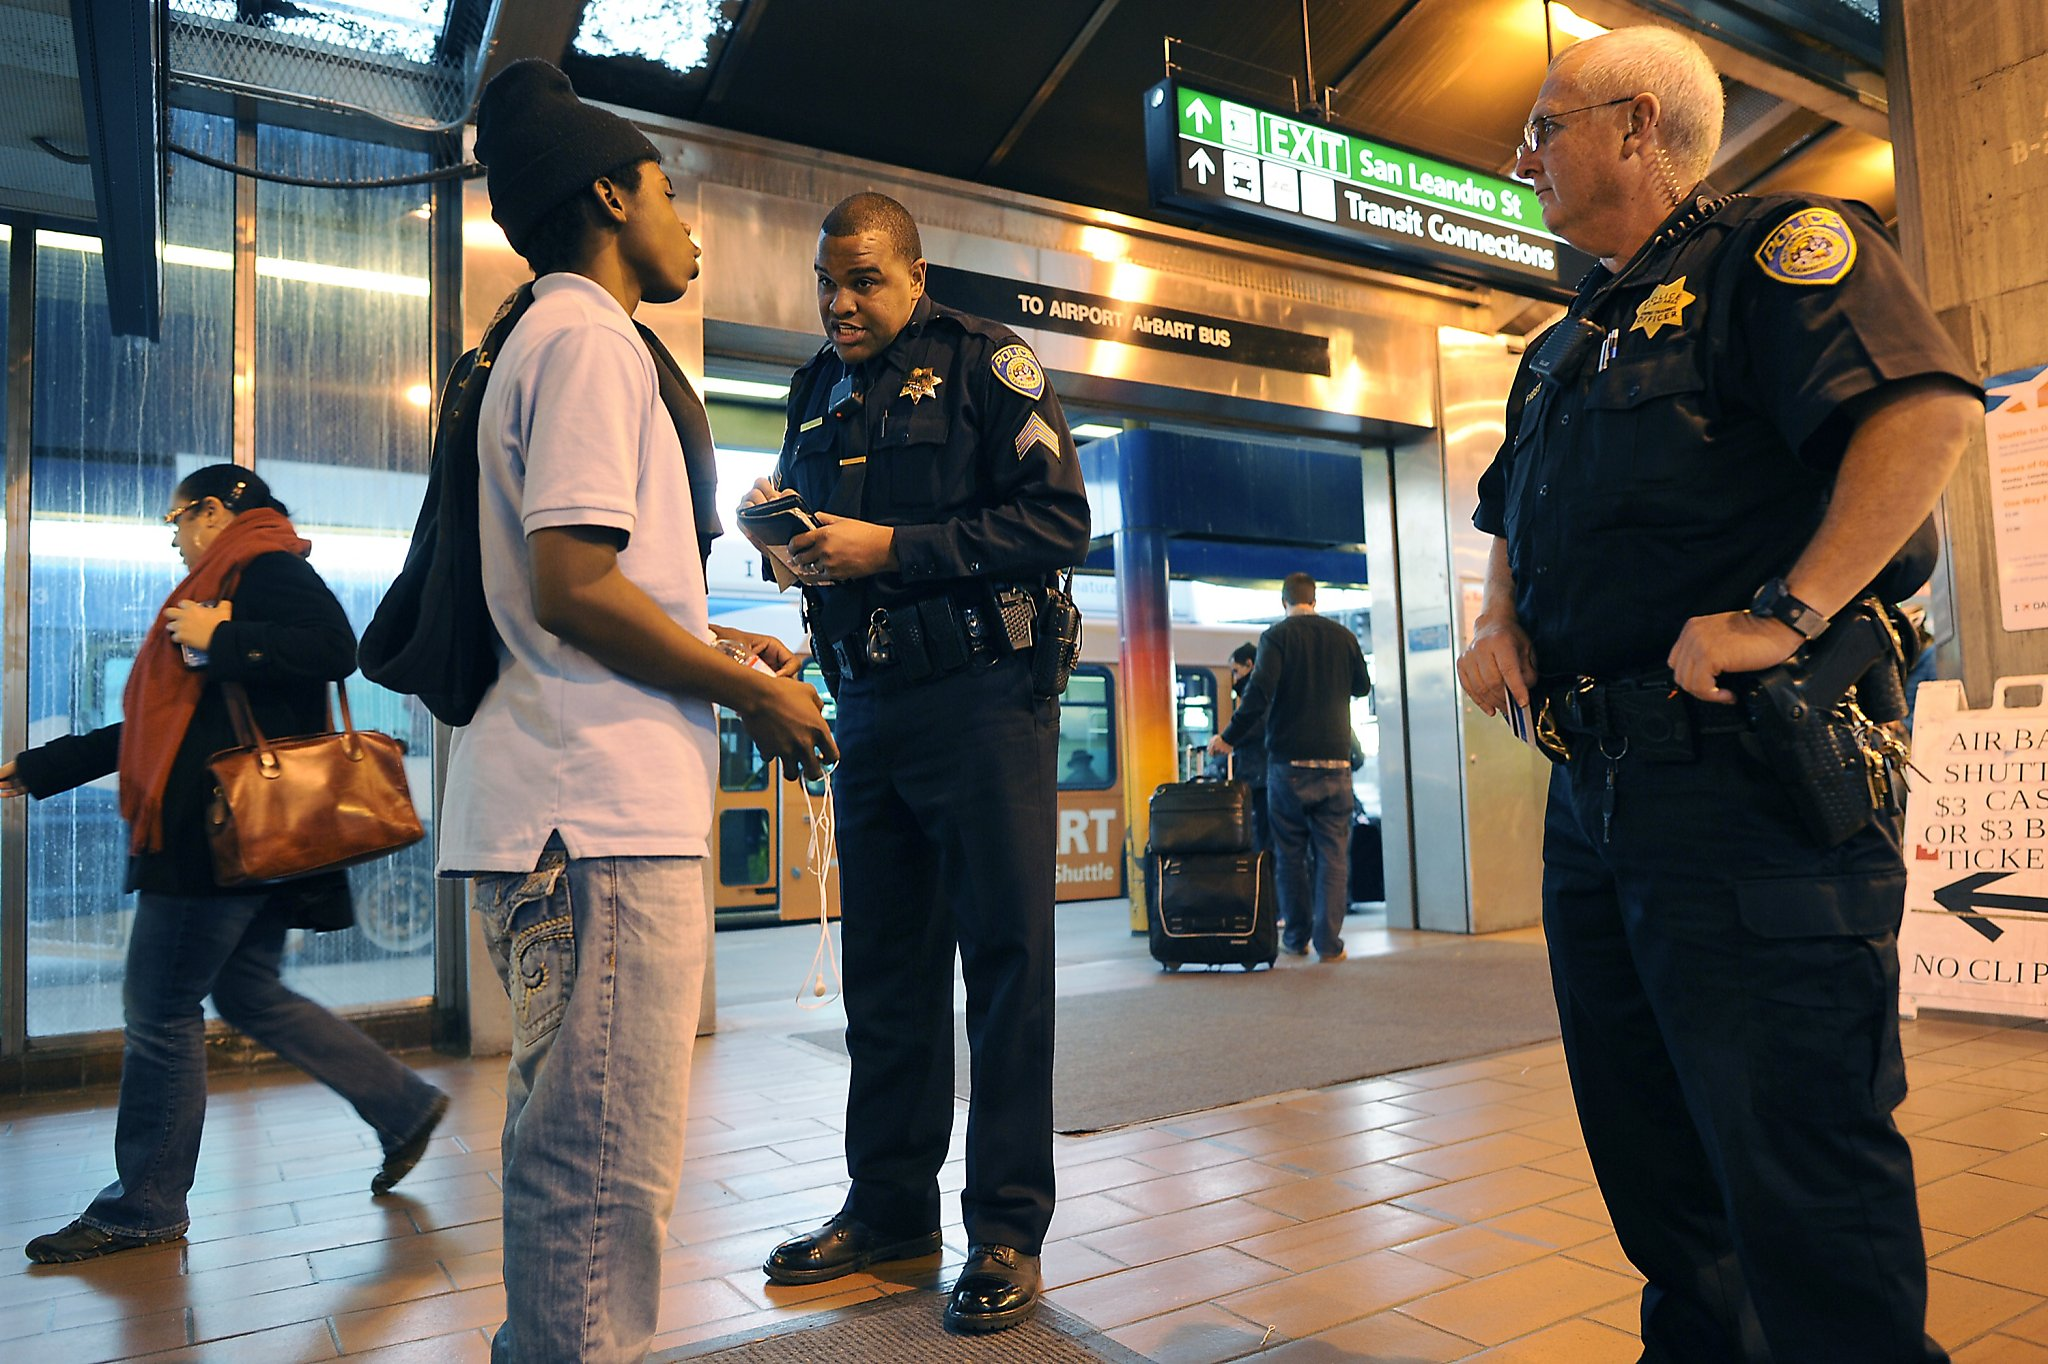 BMW Bay Area >> Critics question why BART police force exists - SFGate